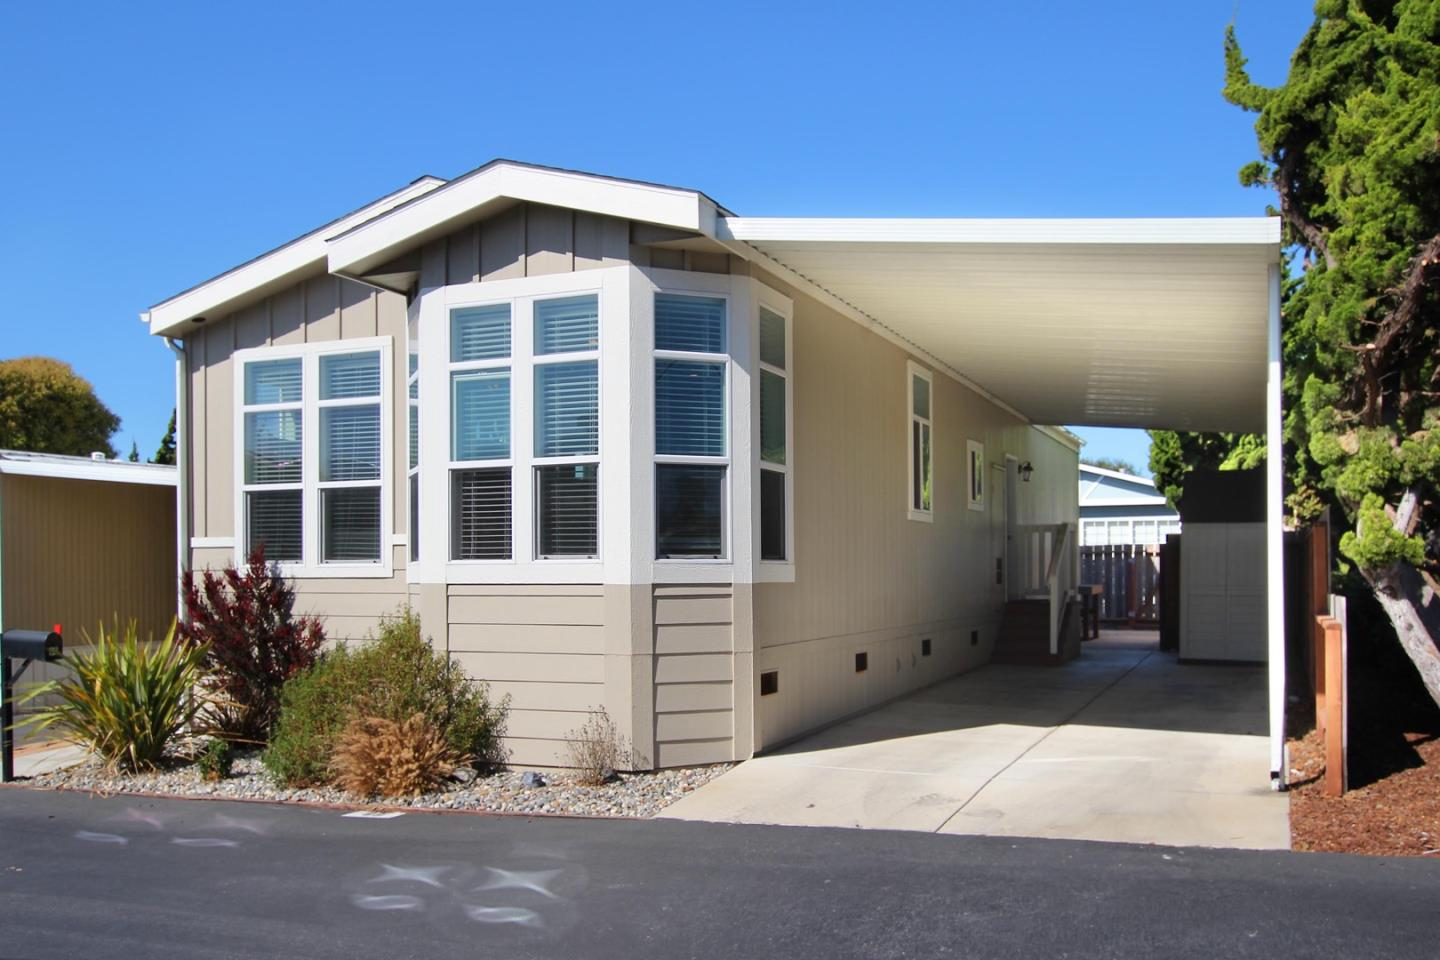 Detail Gallery Image 1 of 19 For 1099 38th Ave #69, Santa Cruz, CA 95062 - 3 Beds   2 Baths